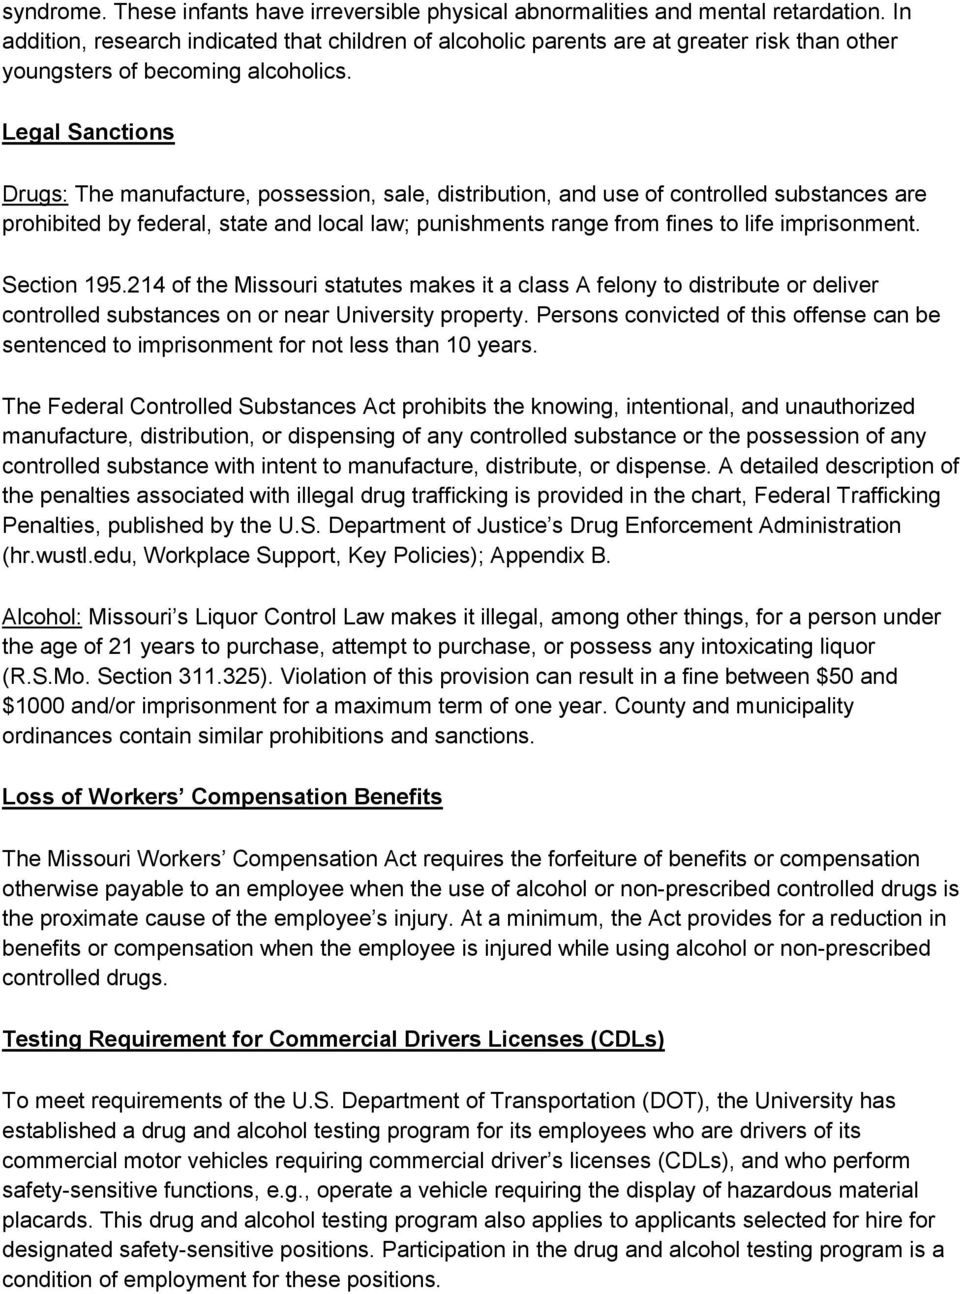 Legal Sanctions Drugs: The manufacture, possession, sale, distribution, and use of controlled substances are prohibited by federal, state and local law; punishments range from fines to life